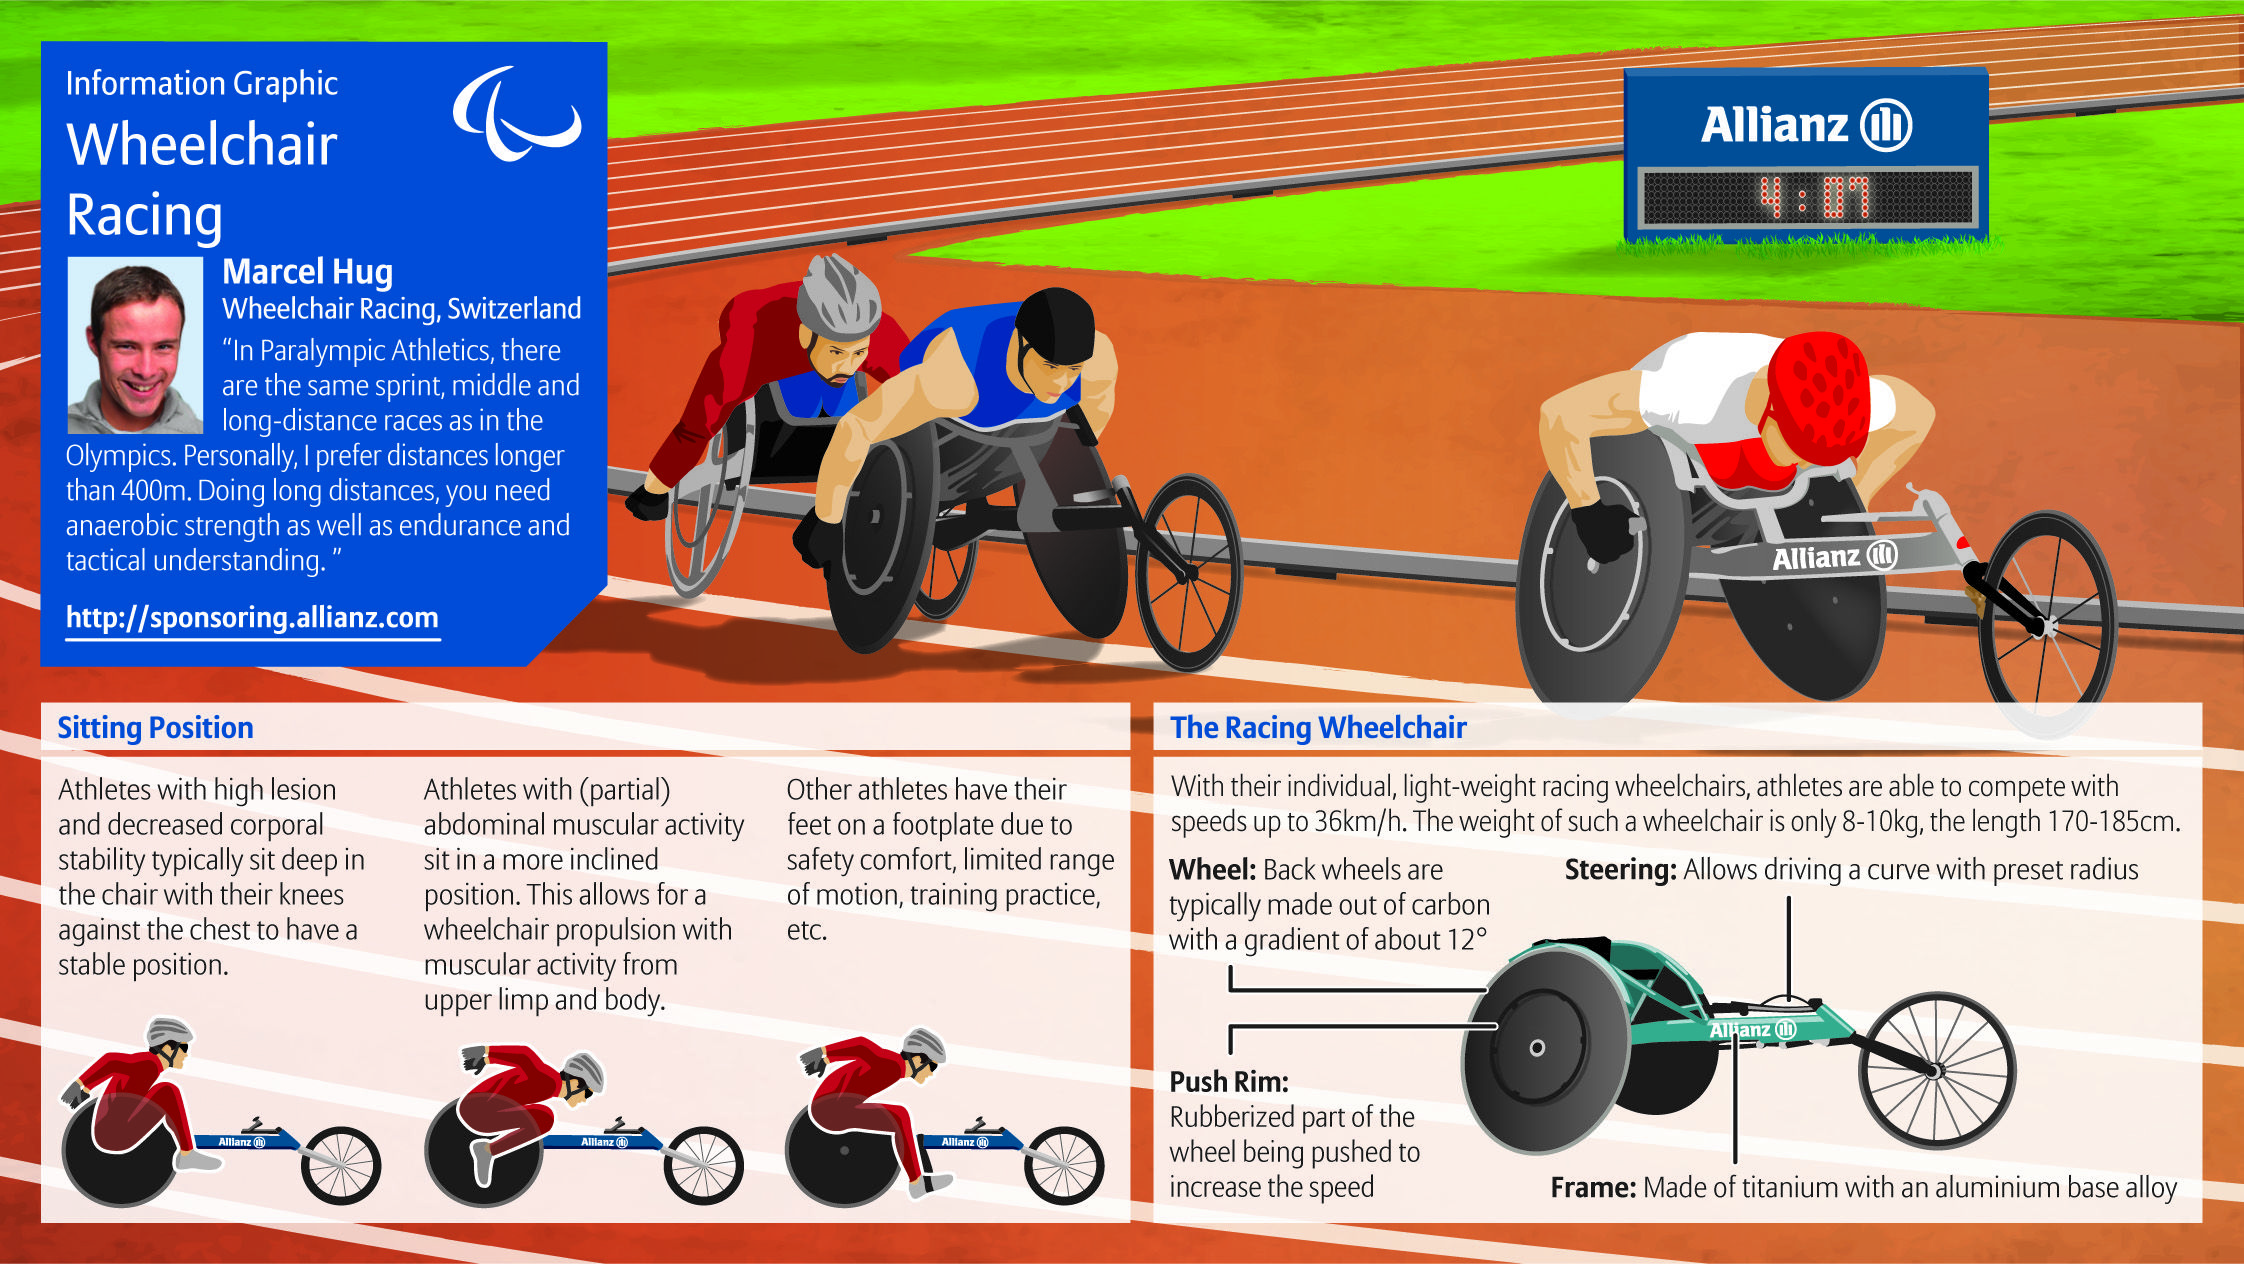 Wheelchair racing is a sport offered through Disabled